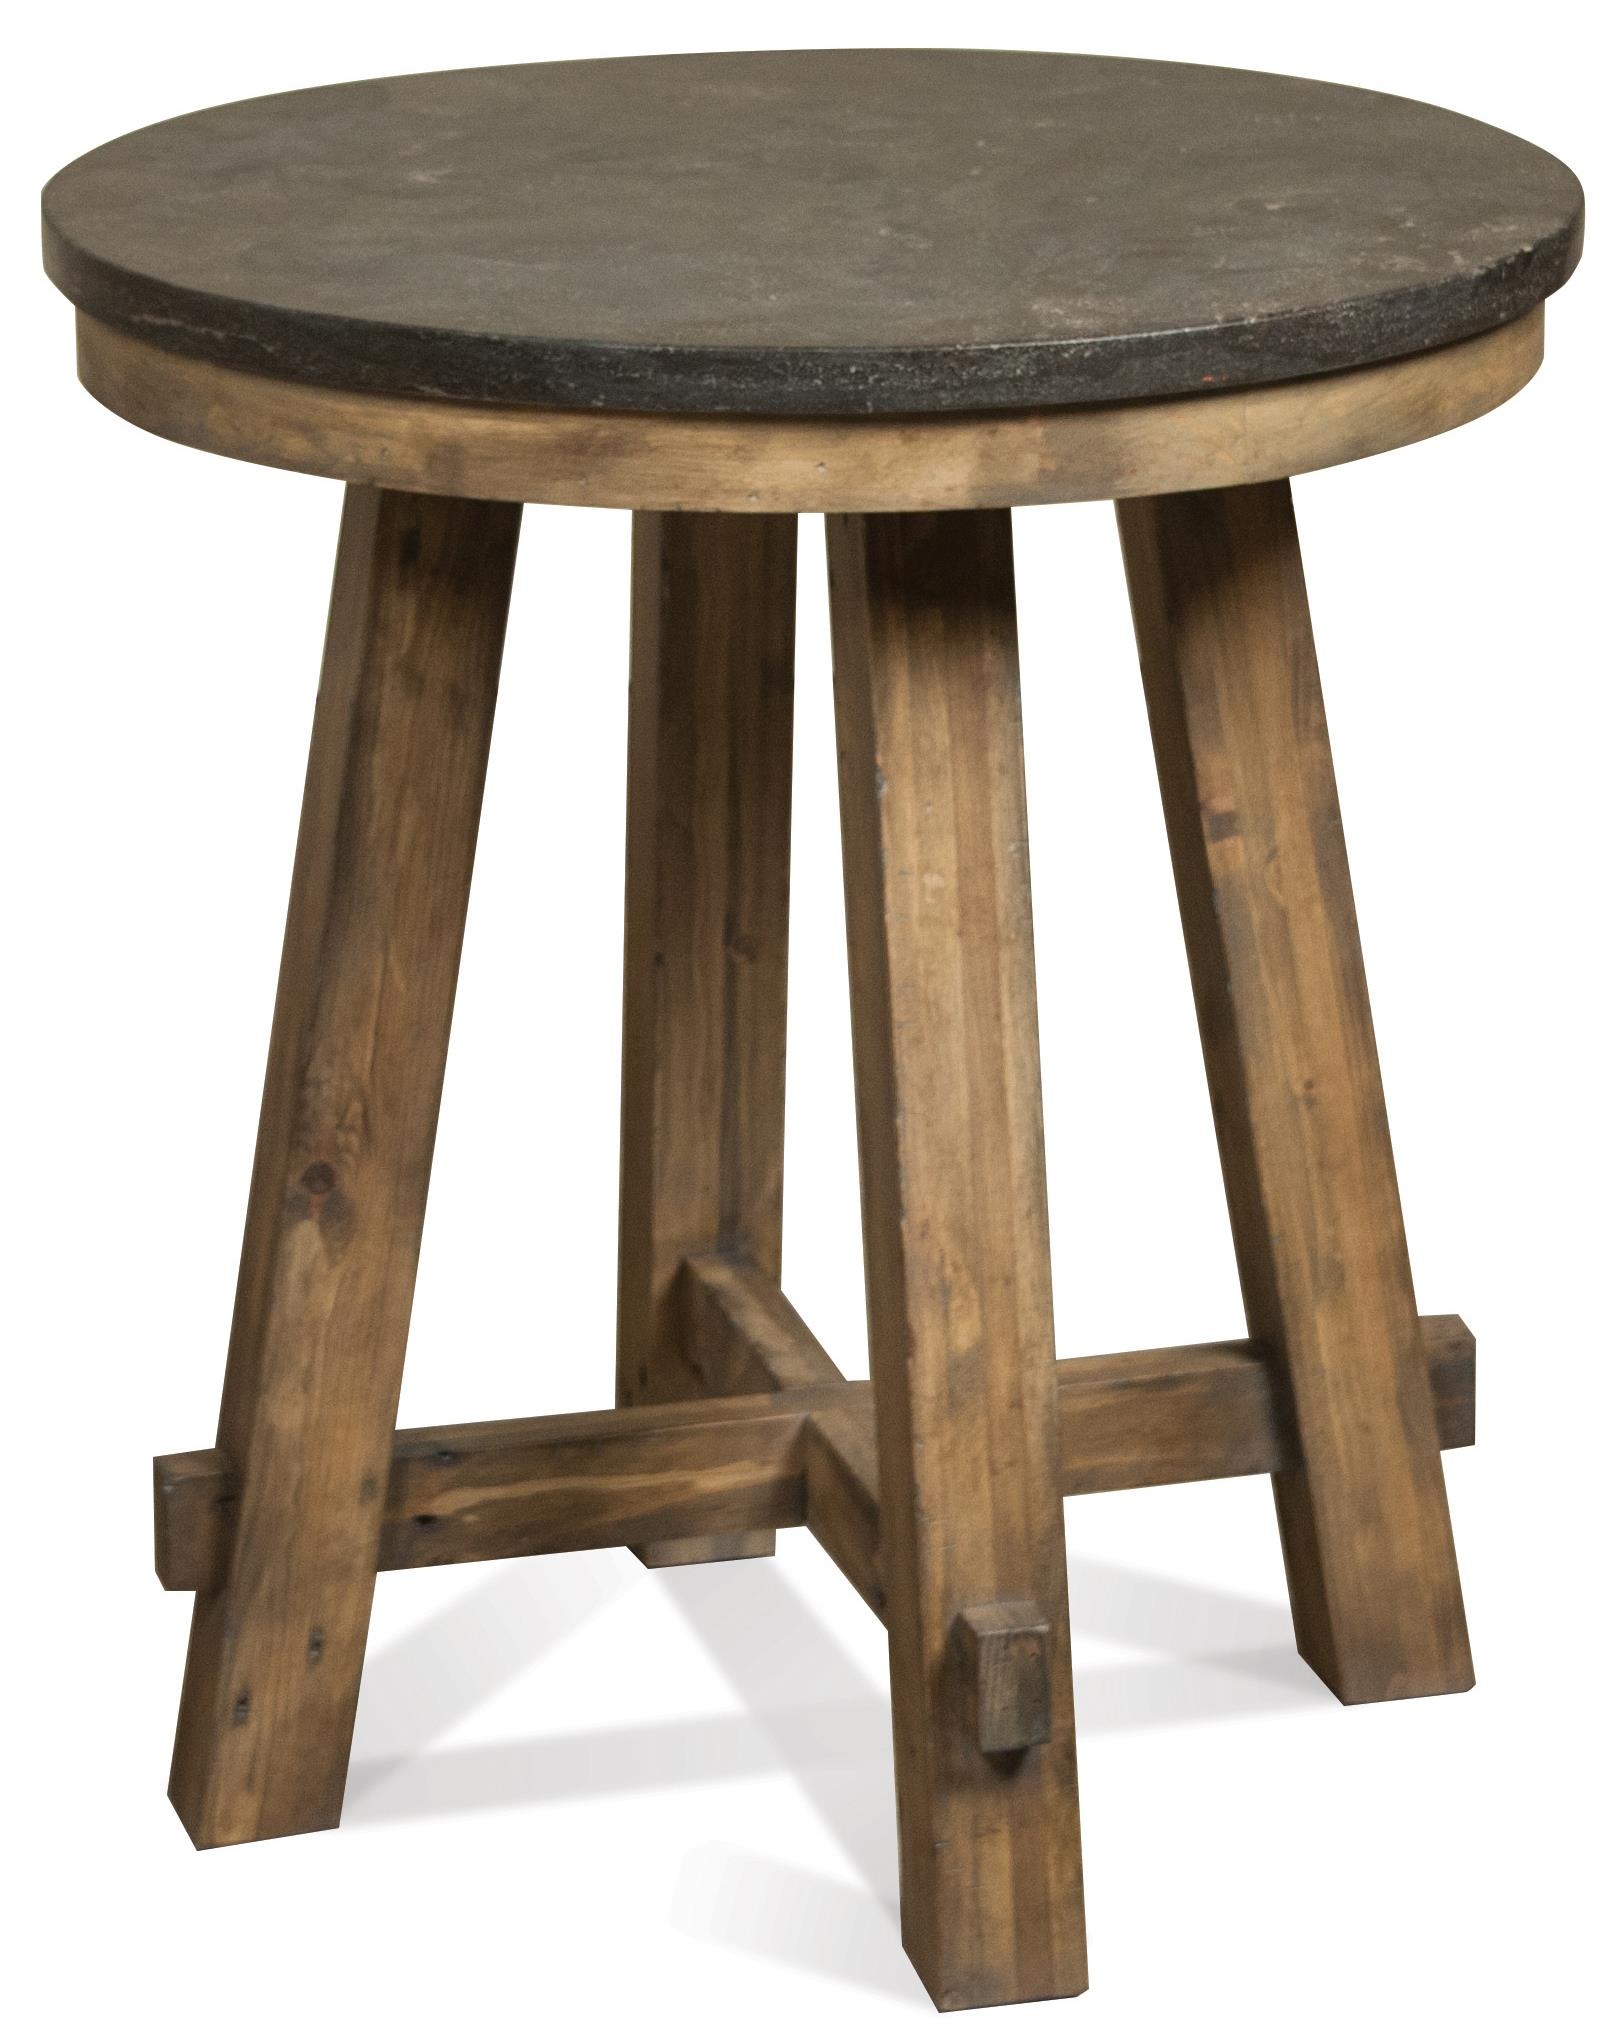 Riverside Furniture Weatherford Round End Table - Item Number: 16511+12